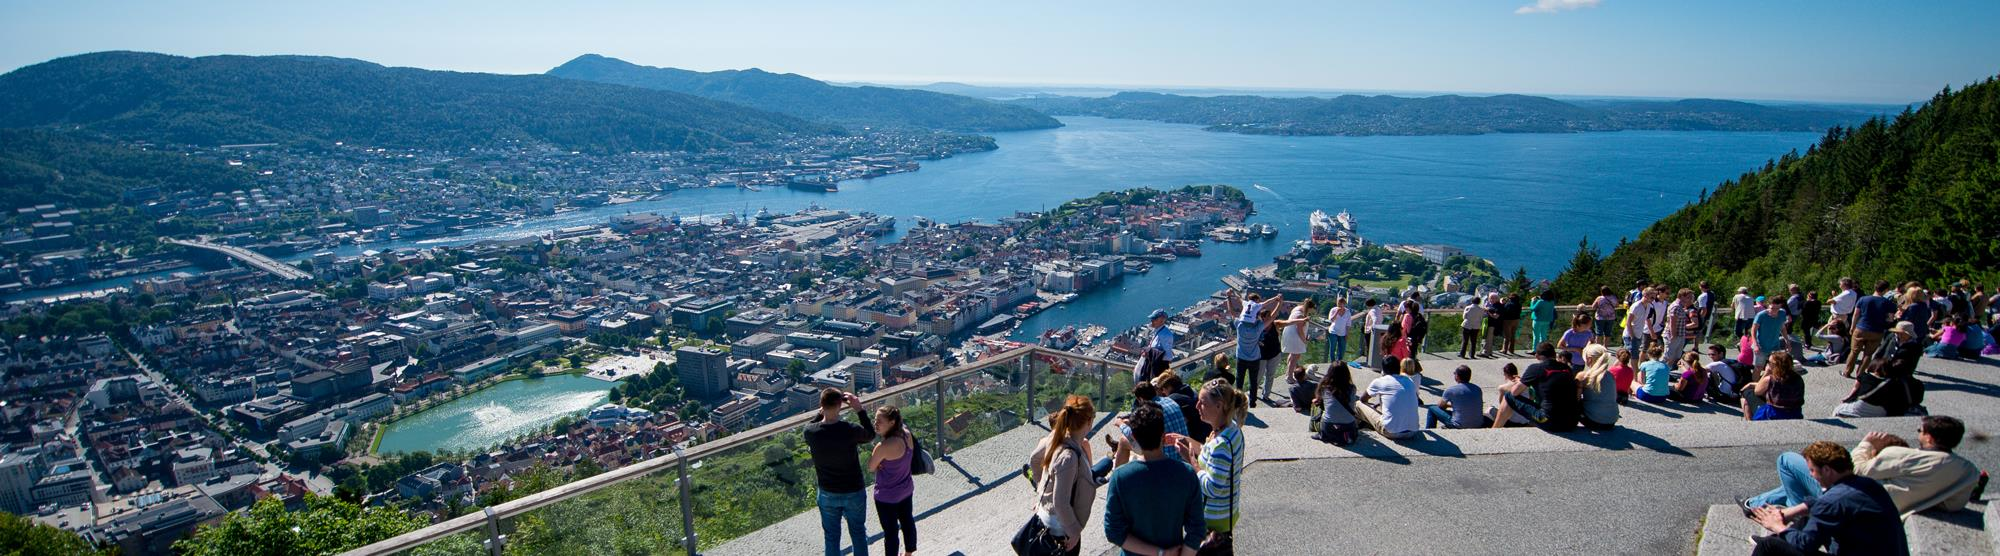 Top 10 places in Bergen for great photos